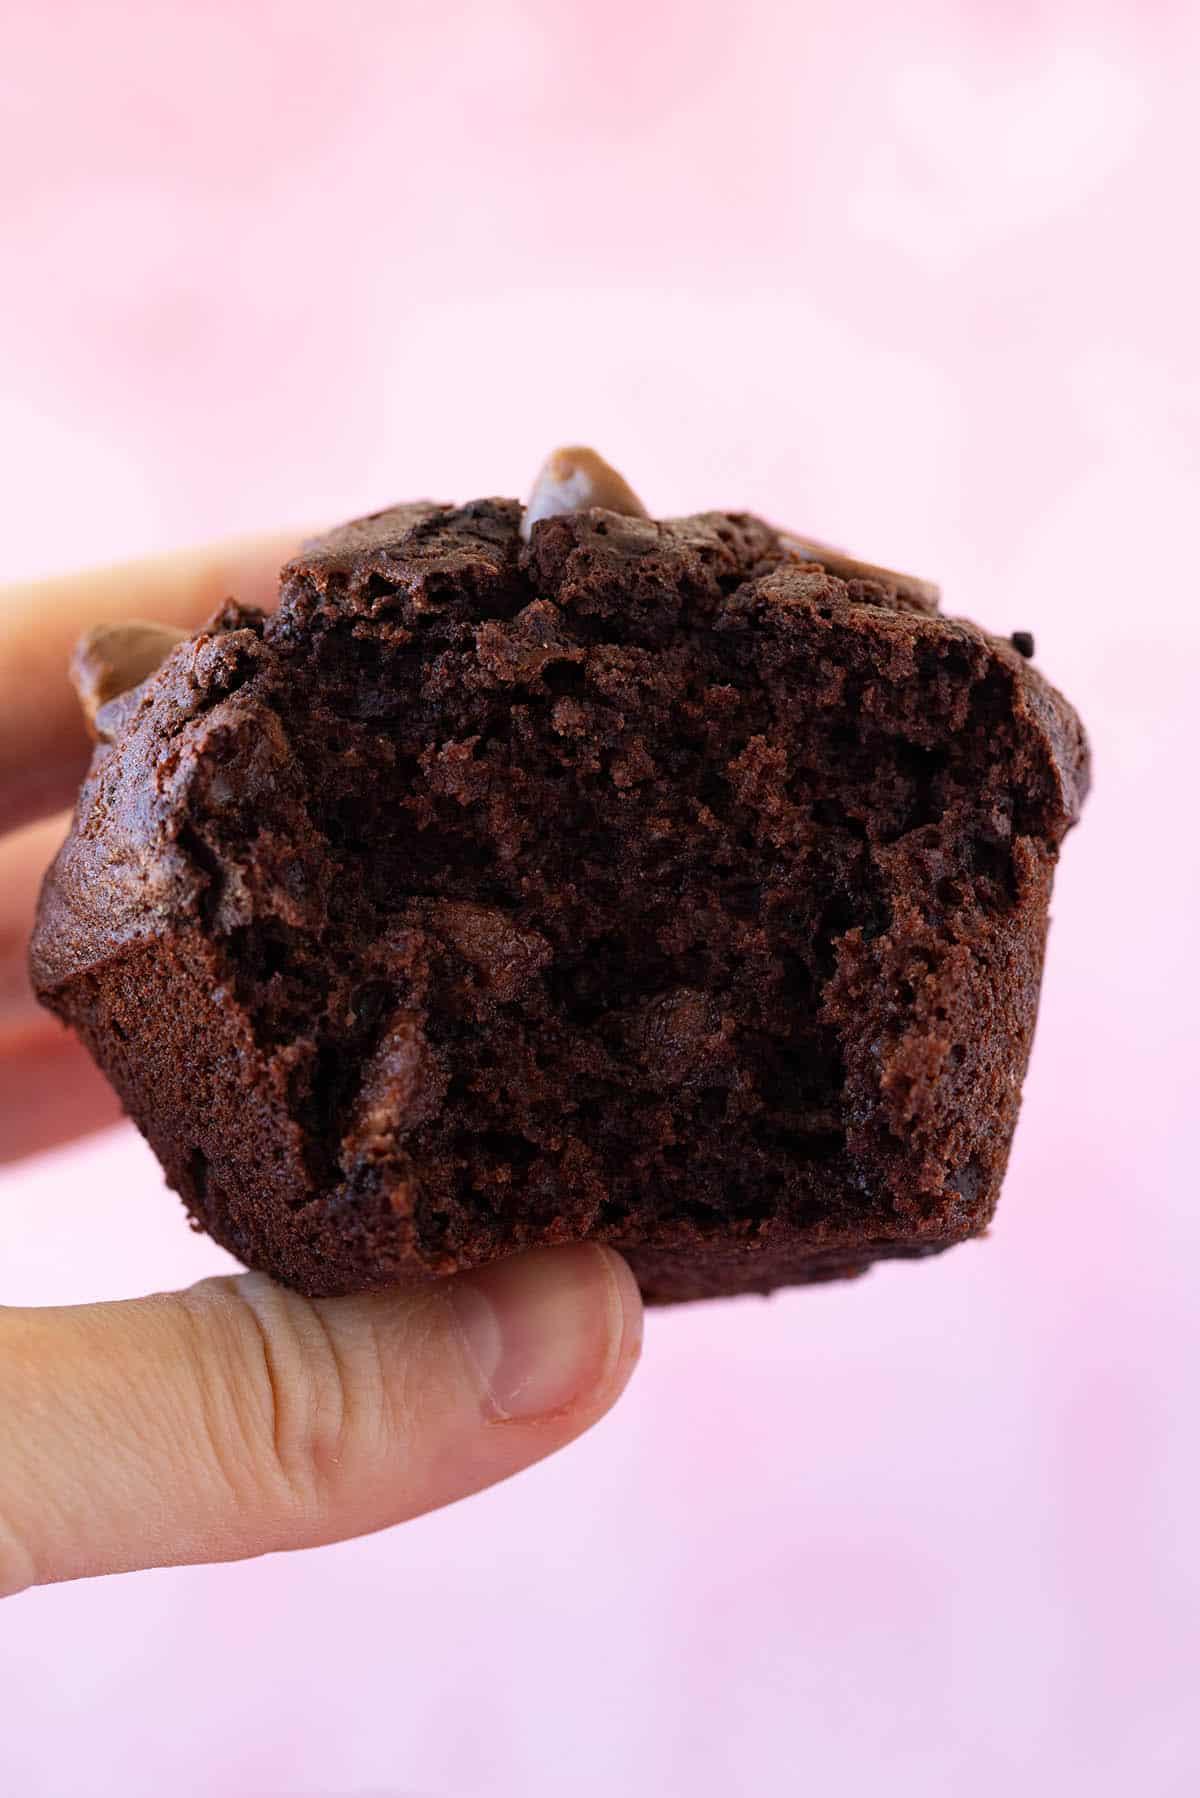 A hand holding a big chocolate muffin with a bite taken out of it